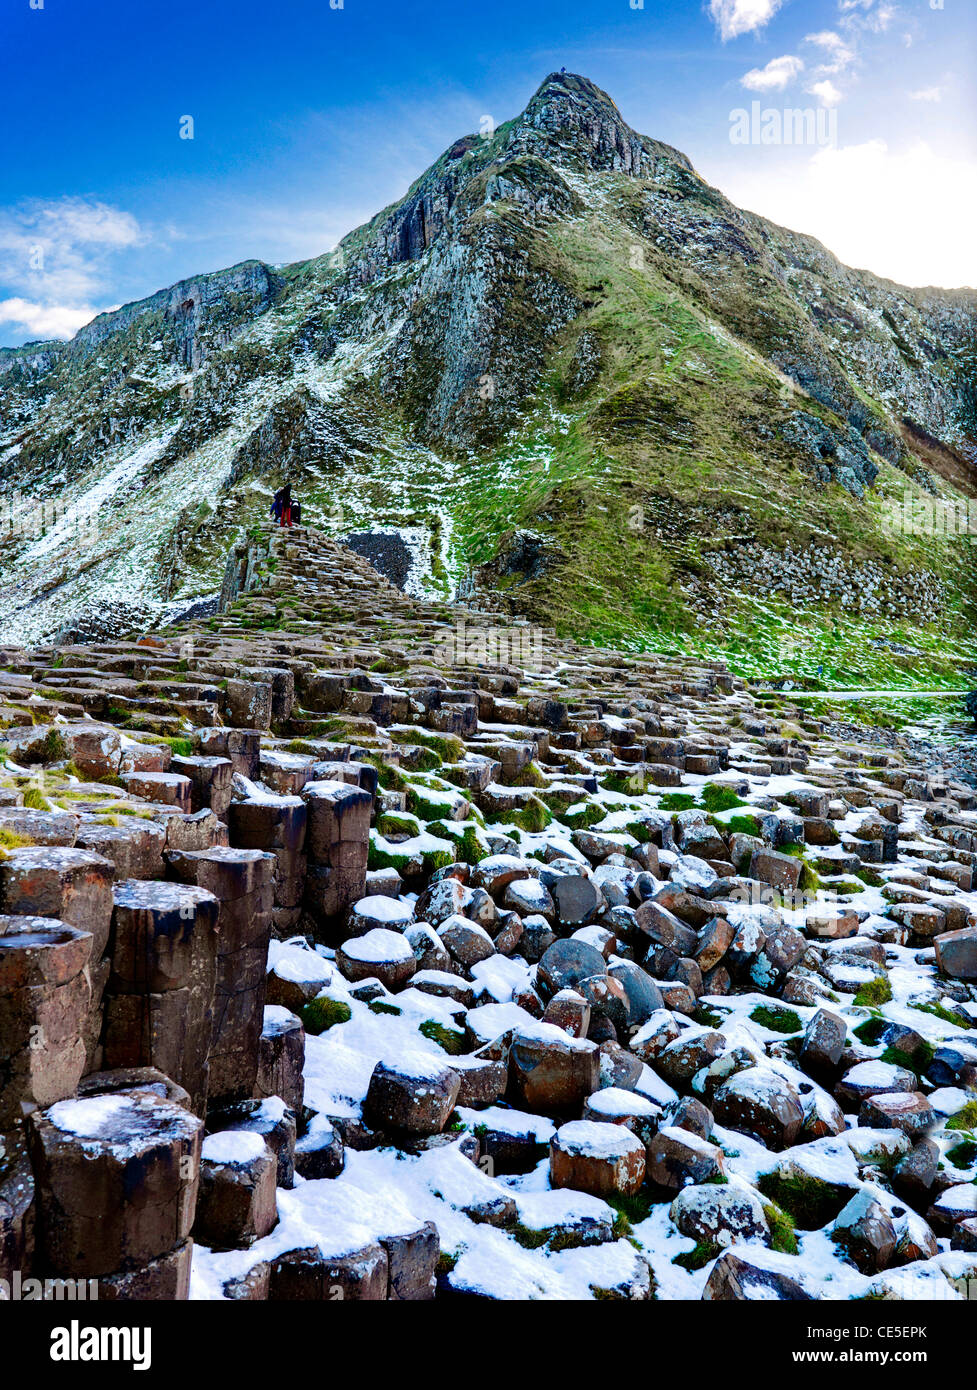 Giant's Causeway in the Snow, Co. Antrim, Northern Ireland - Stock Image